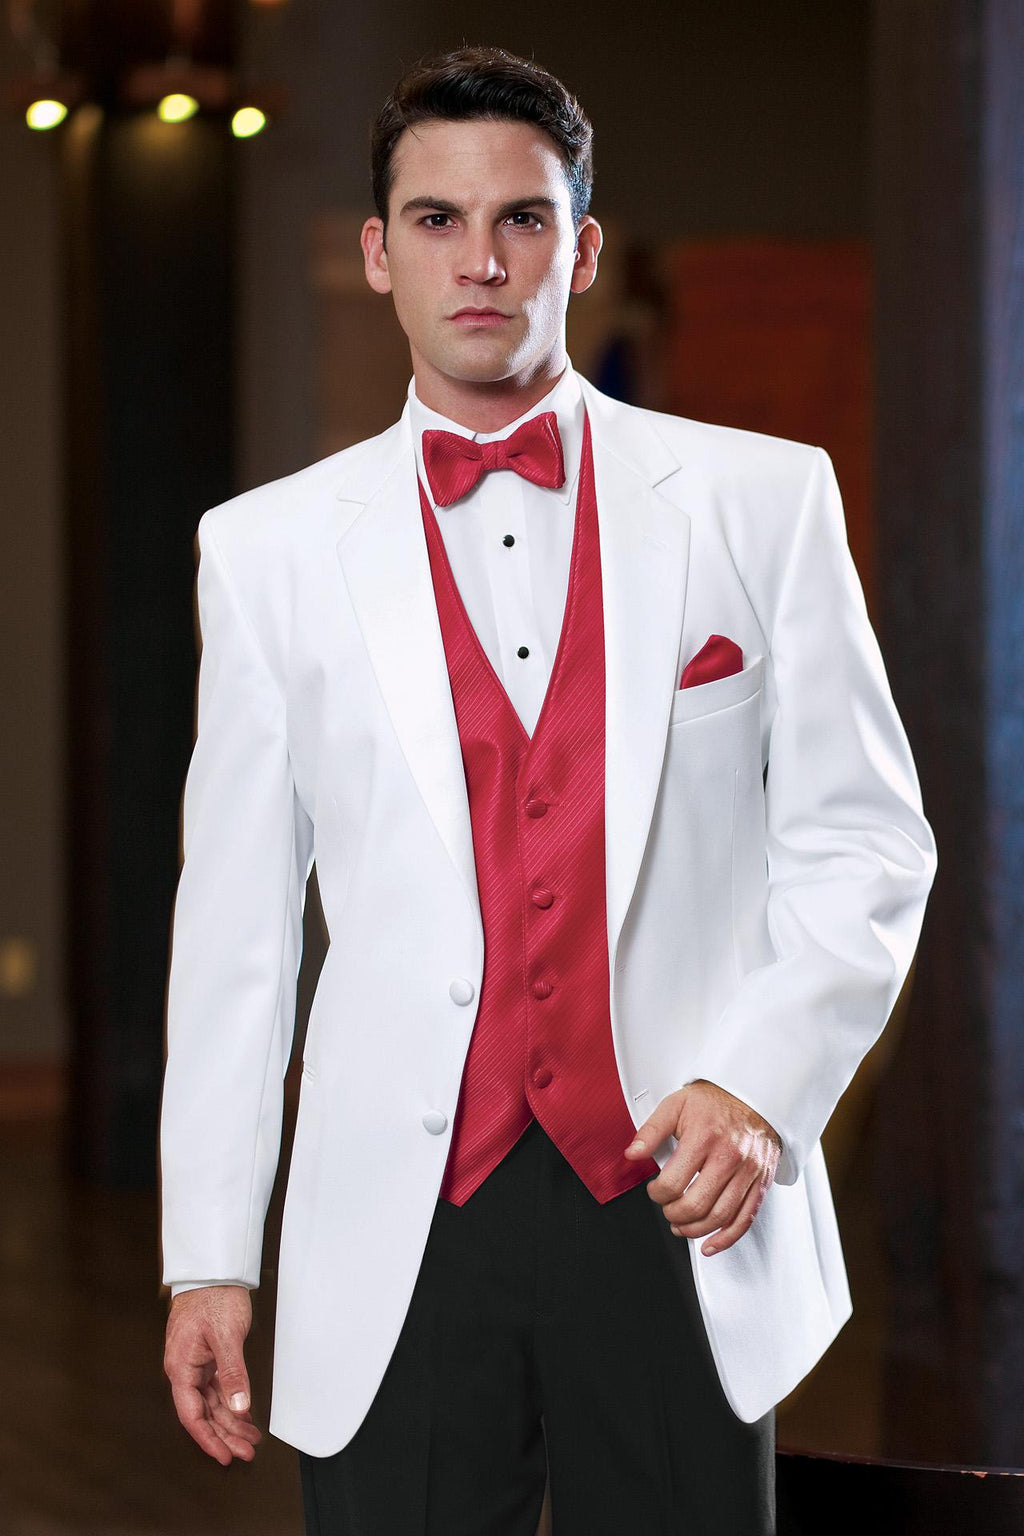 Tuxedo Rental in White for Wedding, Prom or Formal Occassion